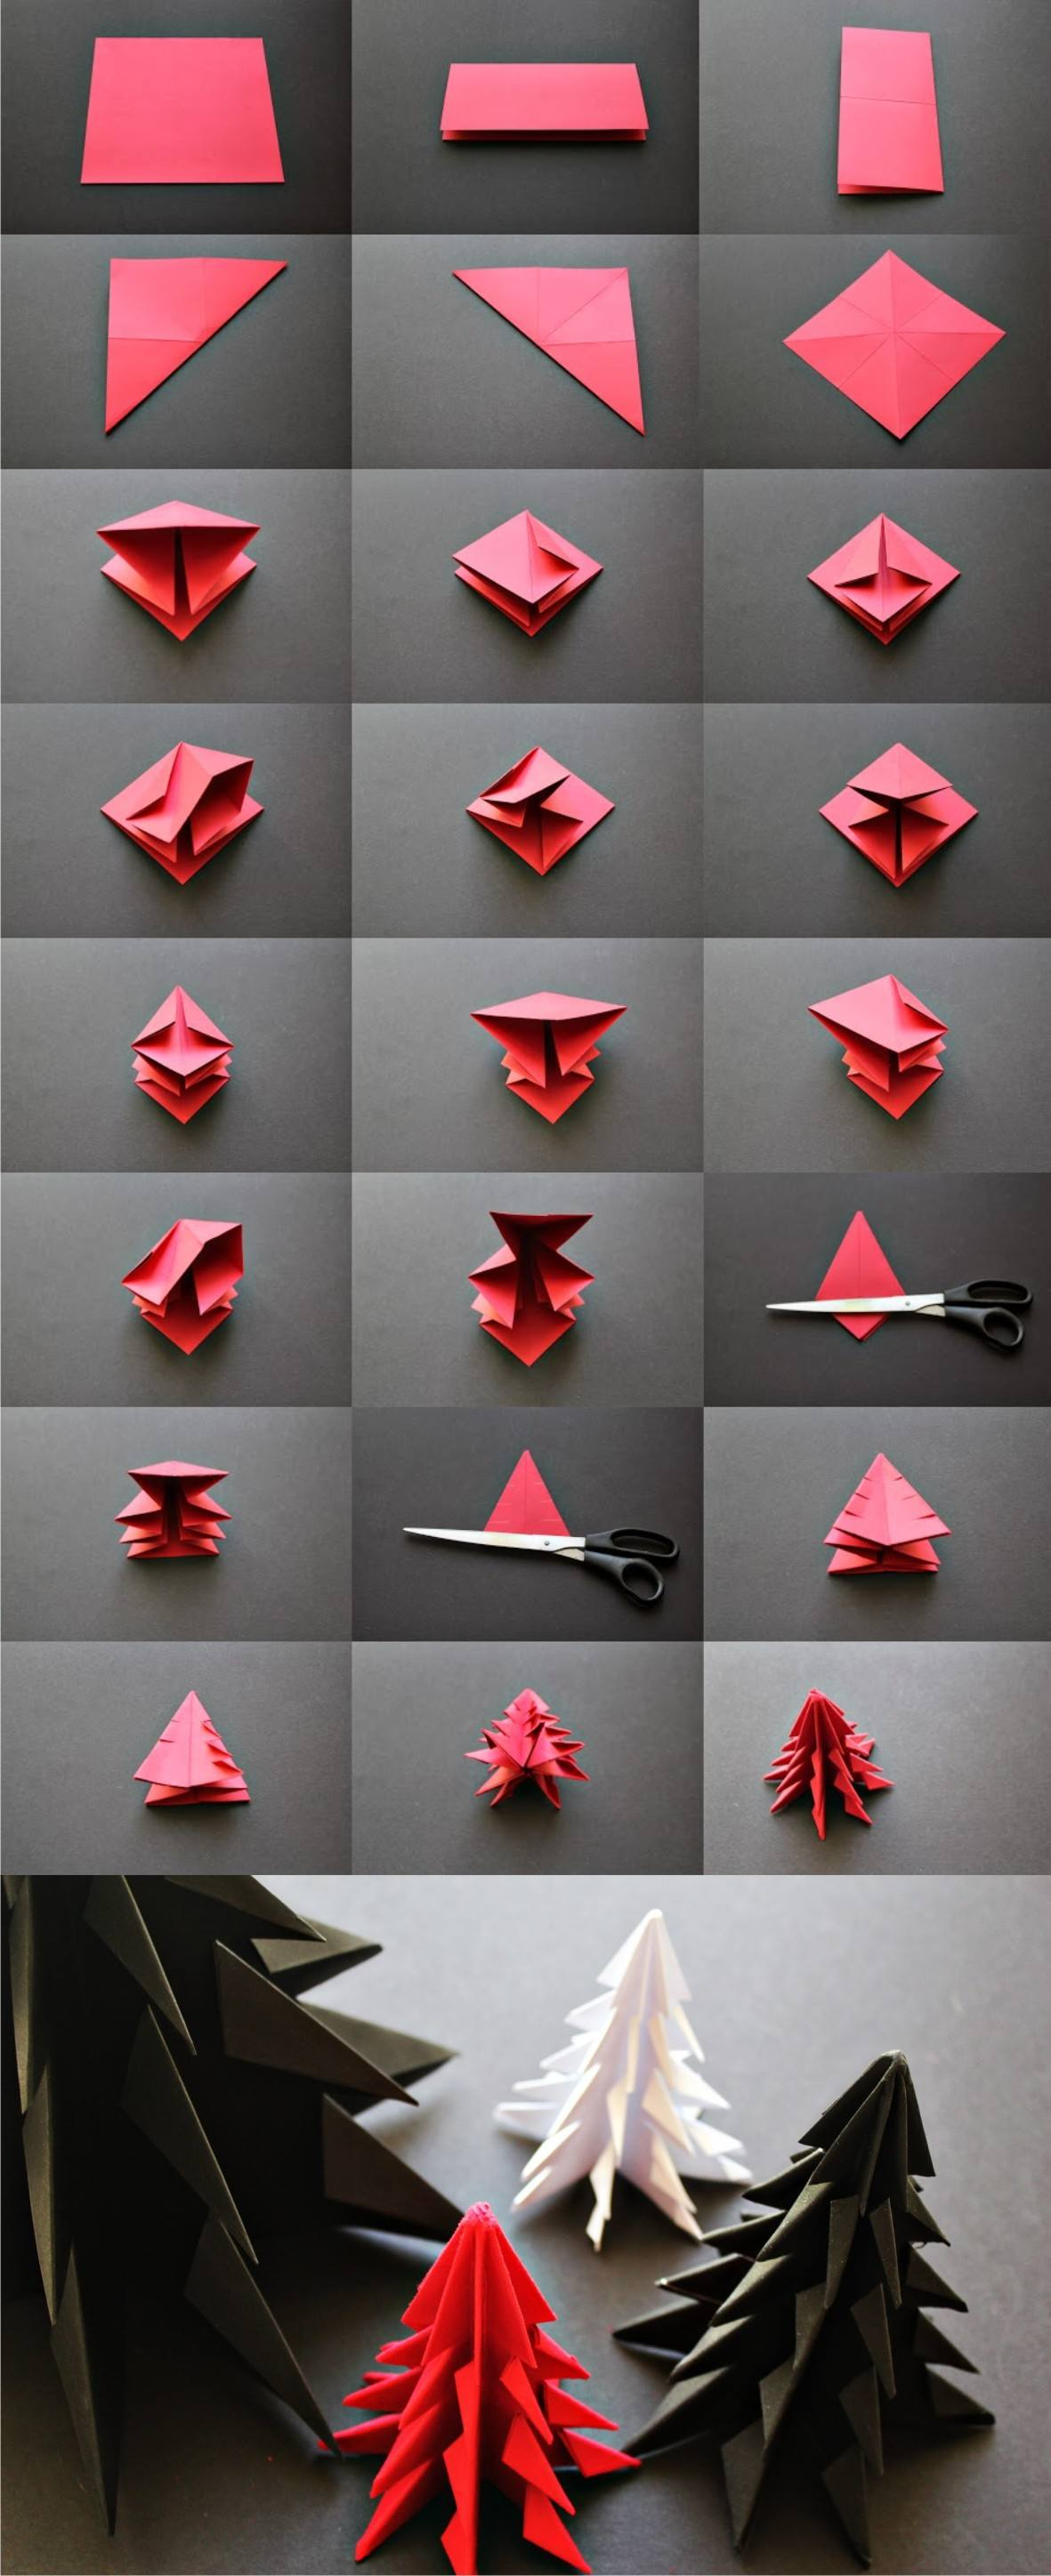 Origami Decoracion Navidad ~ reads Pinterest Facebook Twitter WhatsApp Google+ LIKES